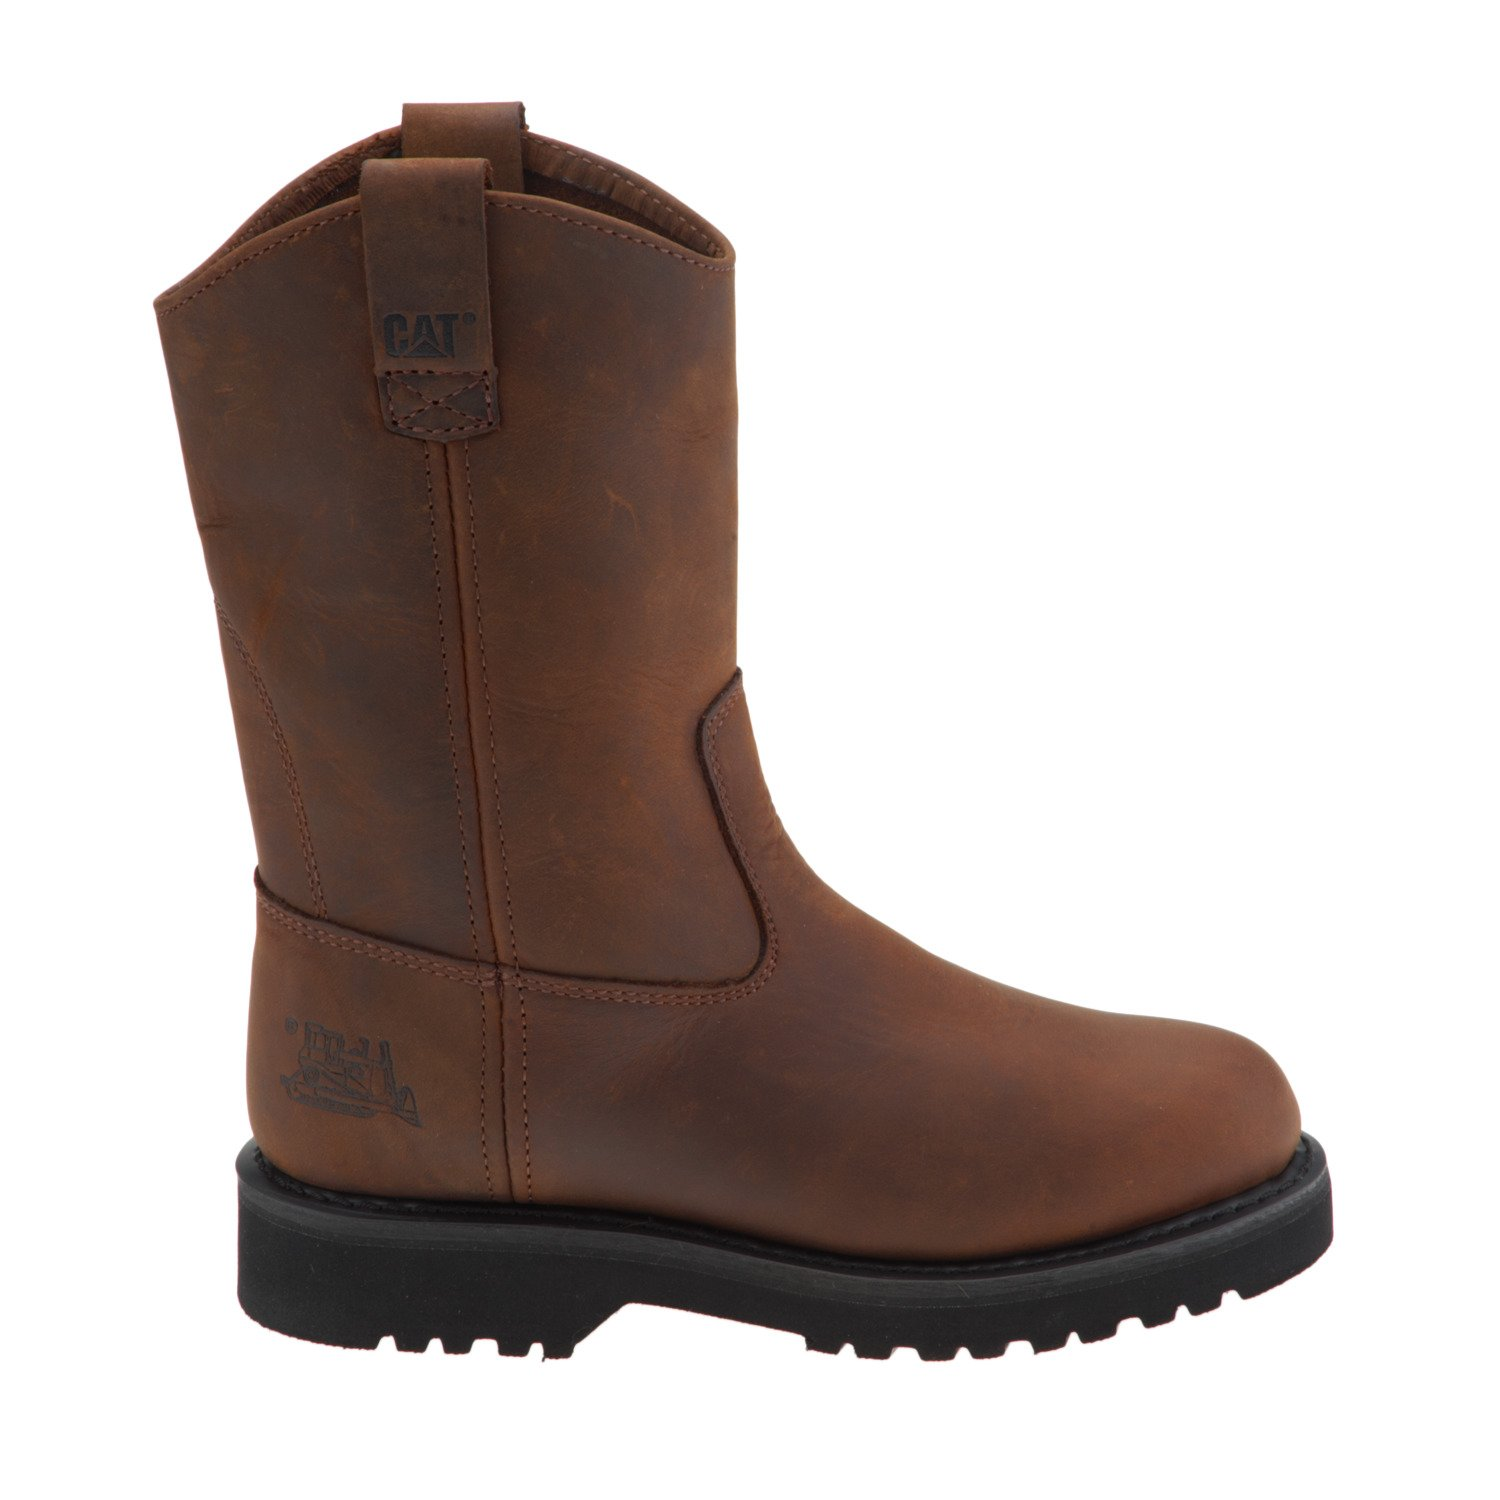 6b577bbb Display product reviews for Cat Footwear Men's Austin EH Wellington Work  Boots